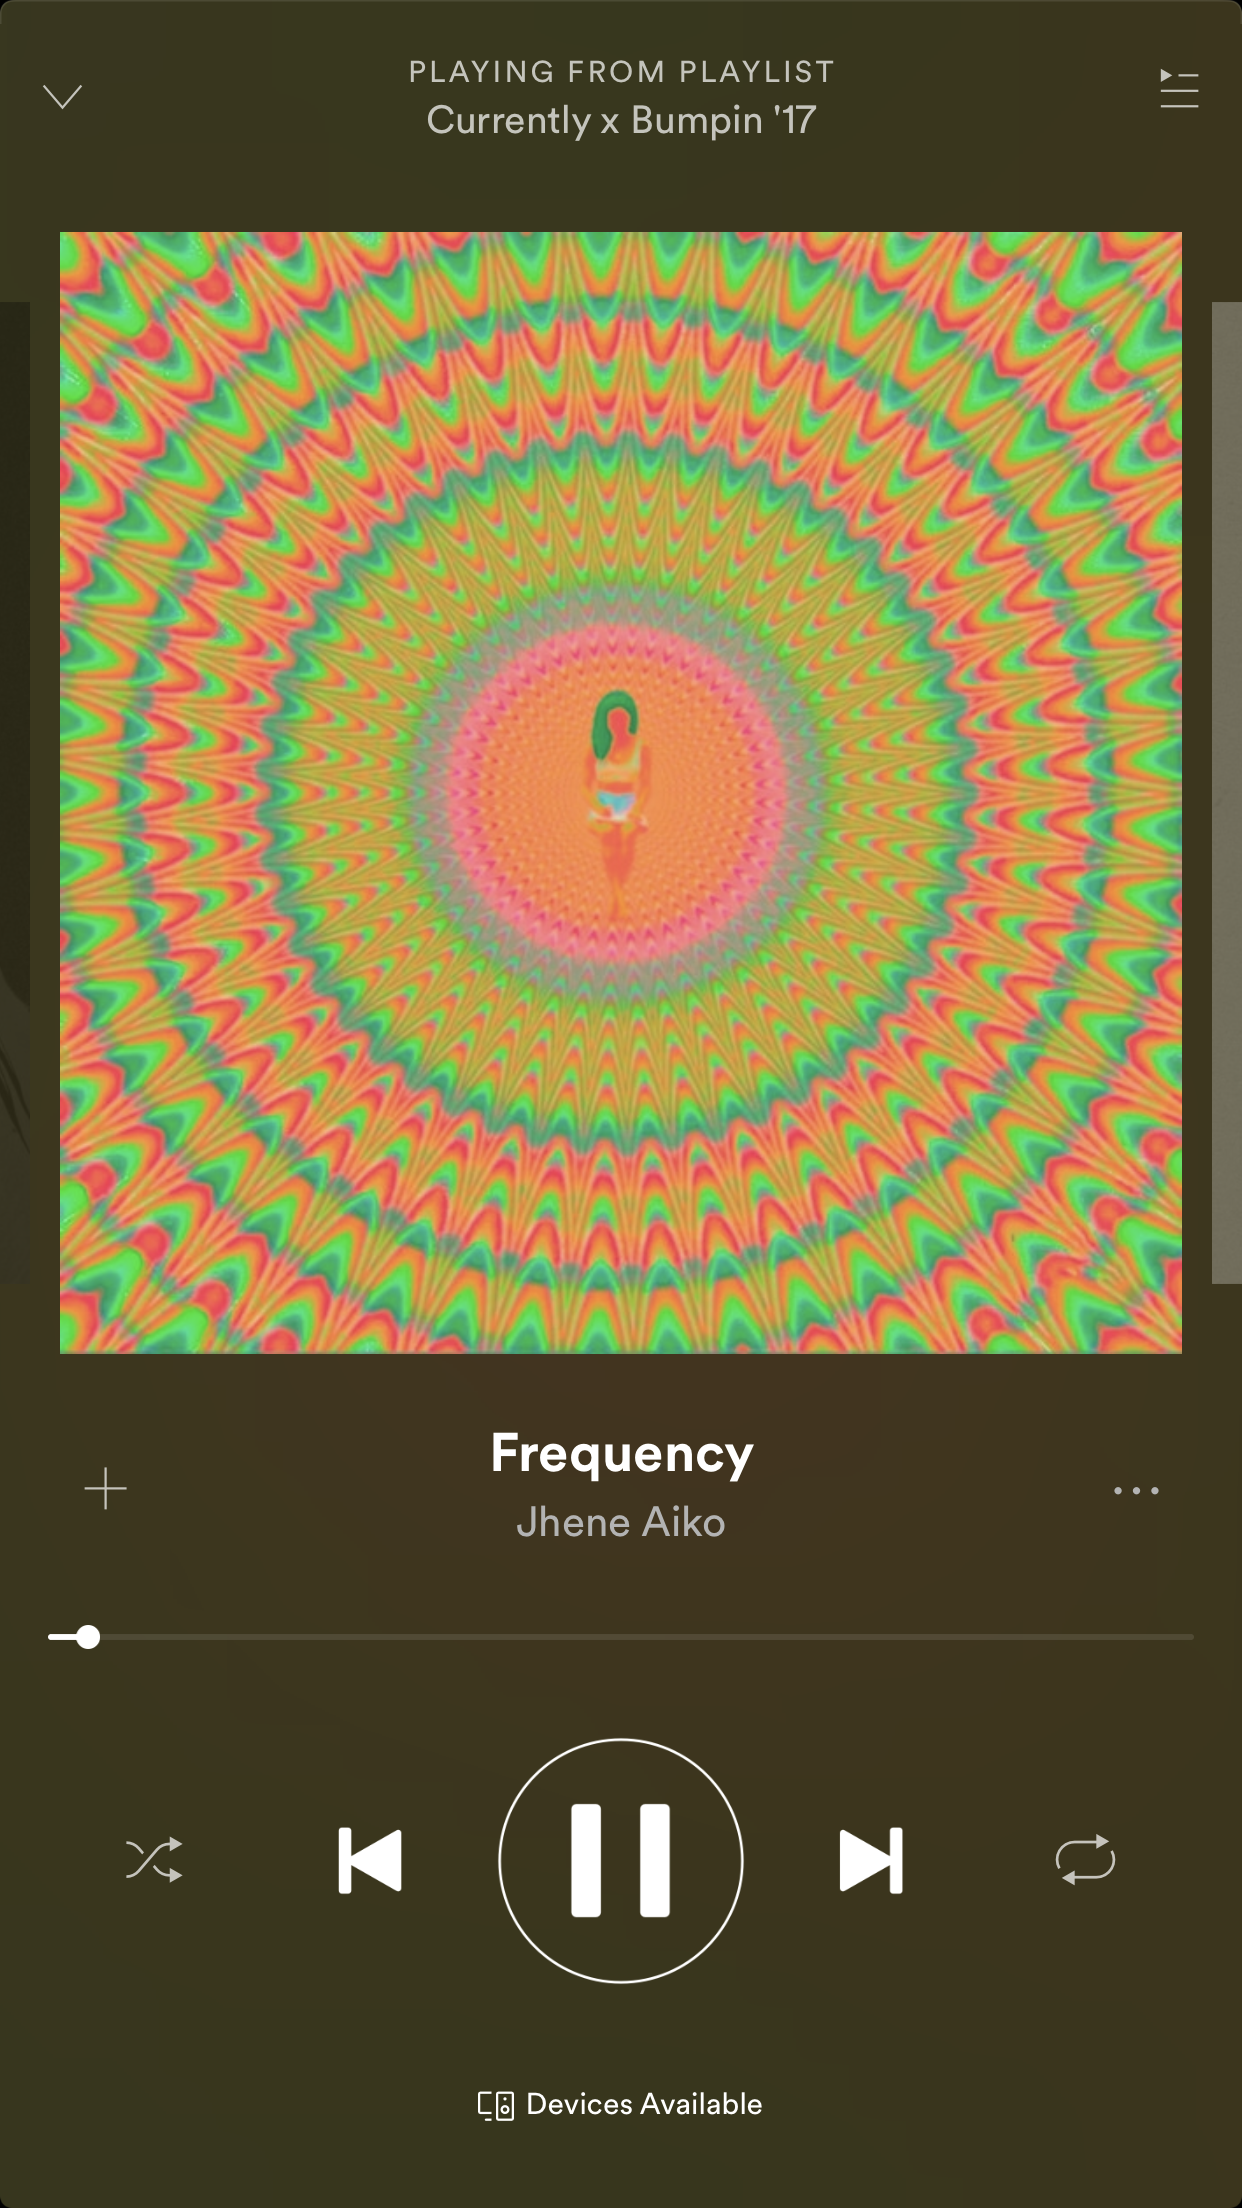 Jhene Aiko Frequency